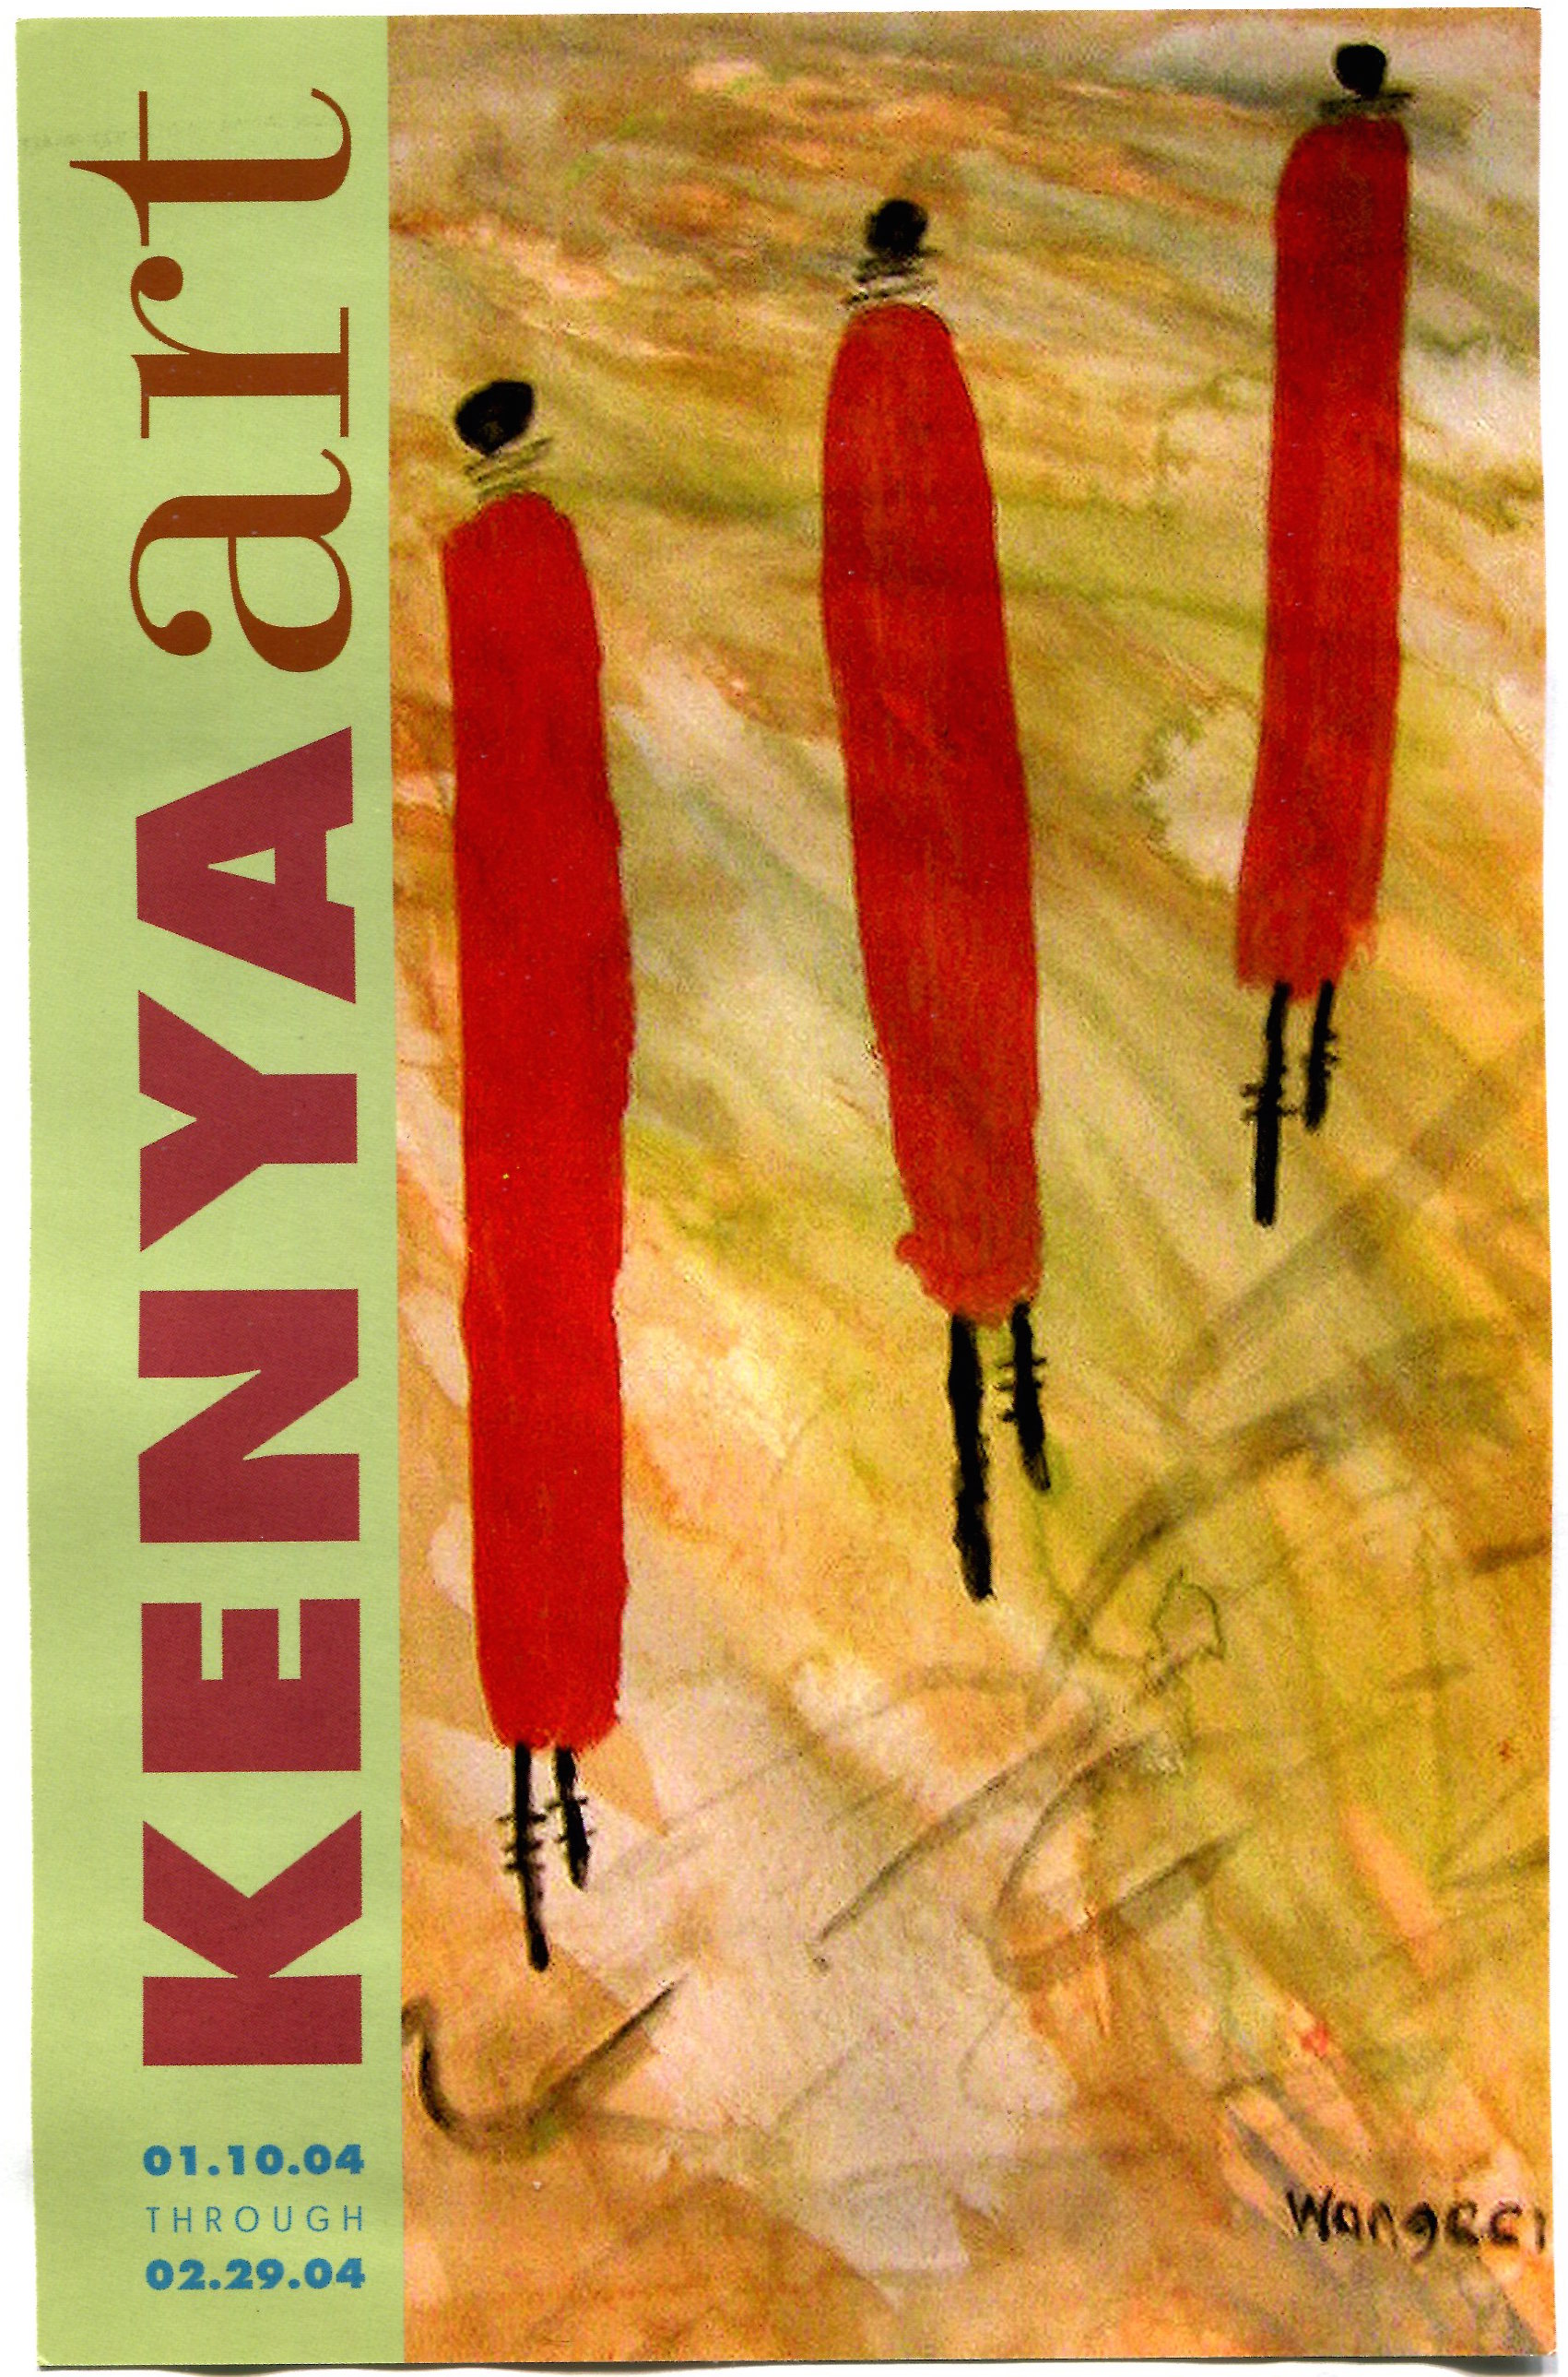 "The flyer for ""Kenya Art"", exhibitions, programs, and performances curated by Judy Ogana and Carol Lees, of artwork from Kenya. The Collaborating venues were the Brooklyn Public Library, FiveMyles, the Salena Gallery at LIU, Welancora Gallery, and Kentler International Drawing Spate. Artwork on the flyer by Beatrice Wangeci. 2004"